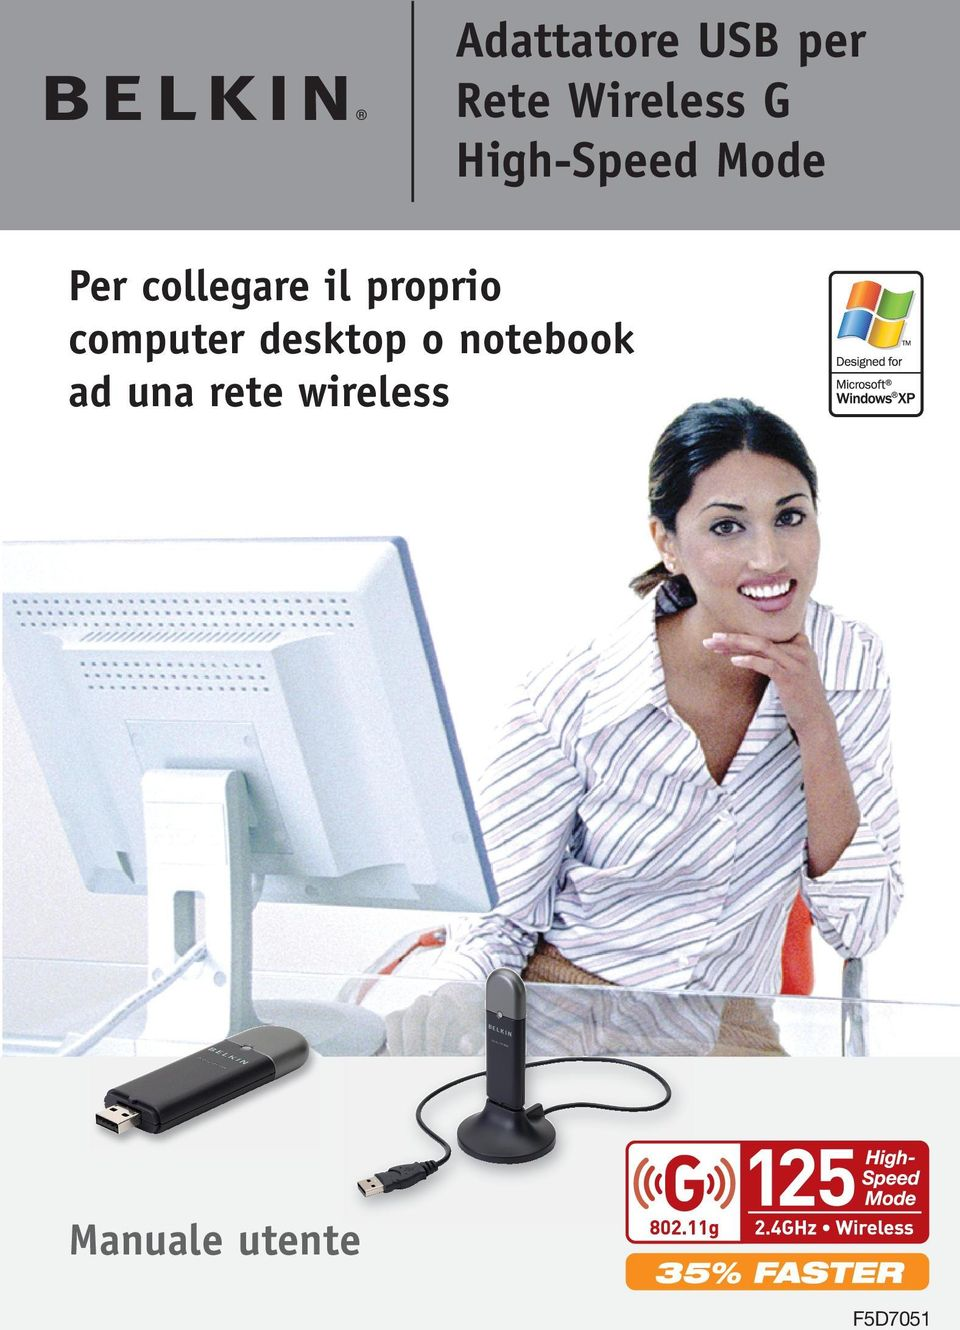 proprio computer desktop o notebook